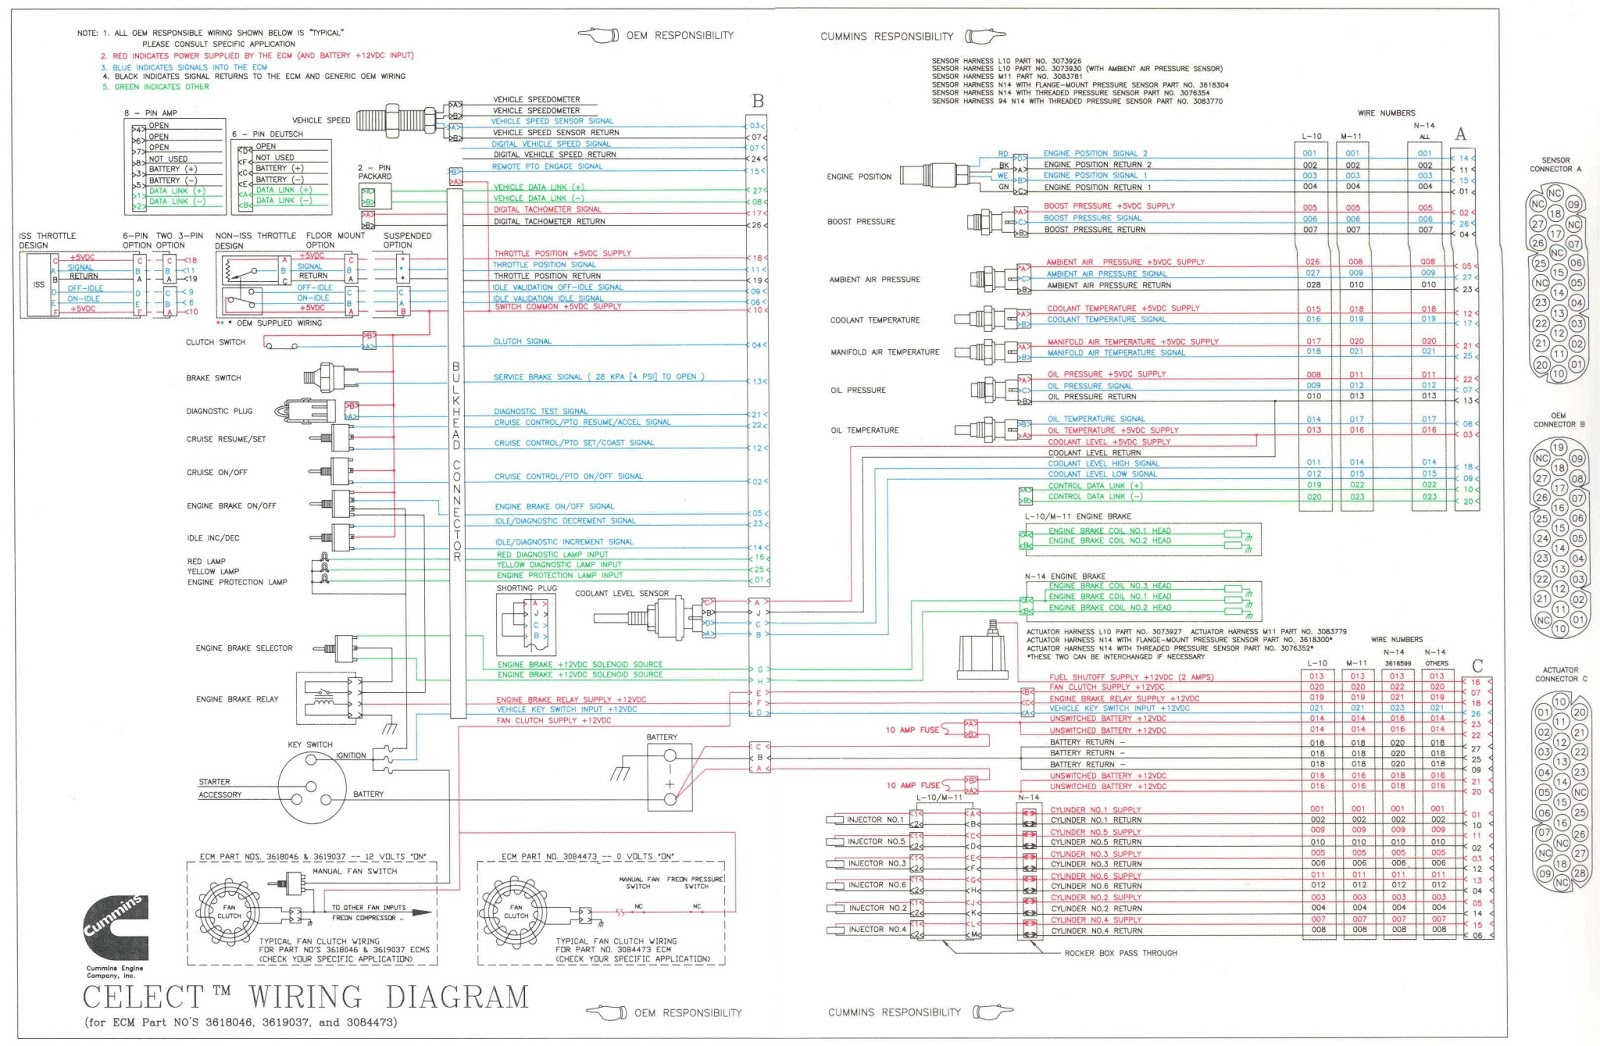 gallery of n14 cummins ecm wiring diagram sample M11 Cummins Engine Diagram n14 cummins ecm wiring diagram n14 cummins ecm wiring diagram collection cool mins celect plus